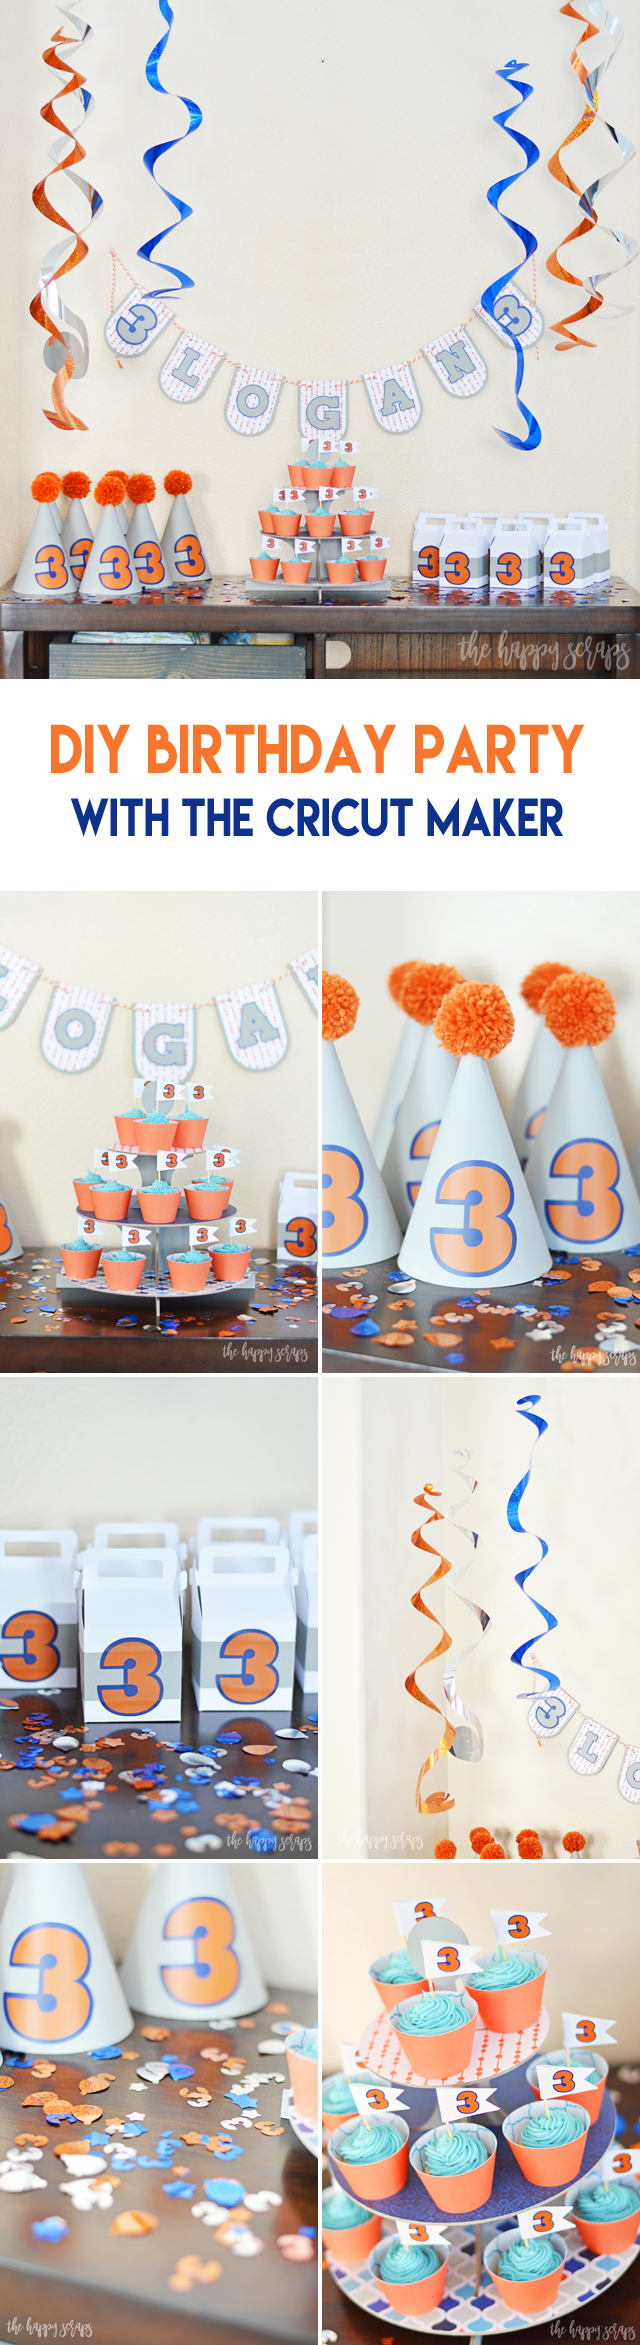 Putting together a DIY Birthday Party with the Cricut Maker is so fun! Use your own ideas to create it or use these that are ready for you!